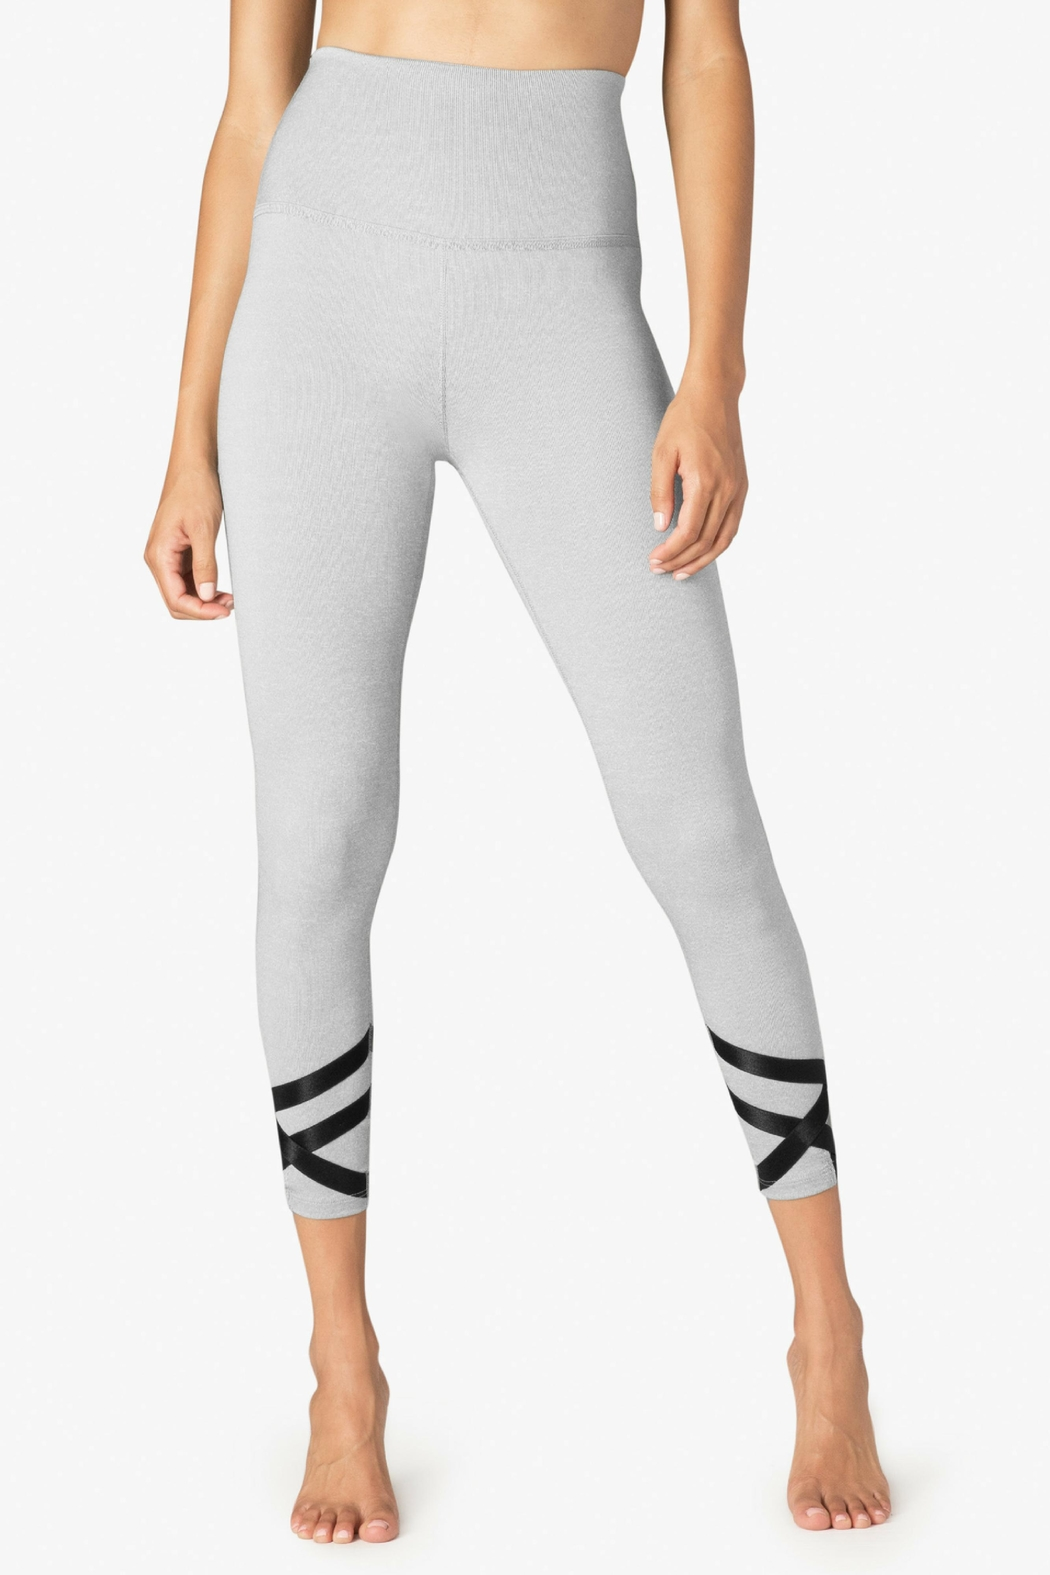 Beyond Yoga Ballet Strappy Leggings - Front Cropped Image